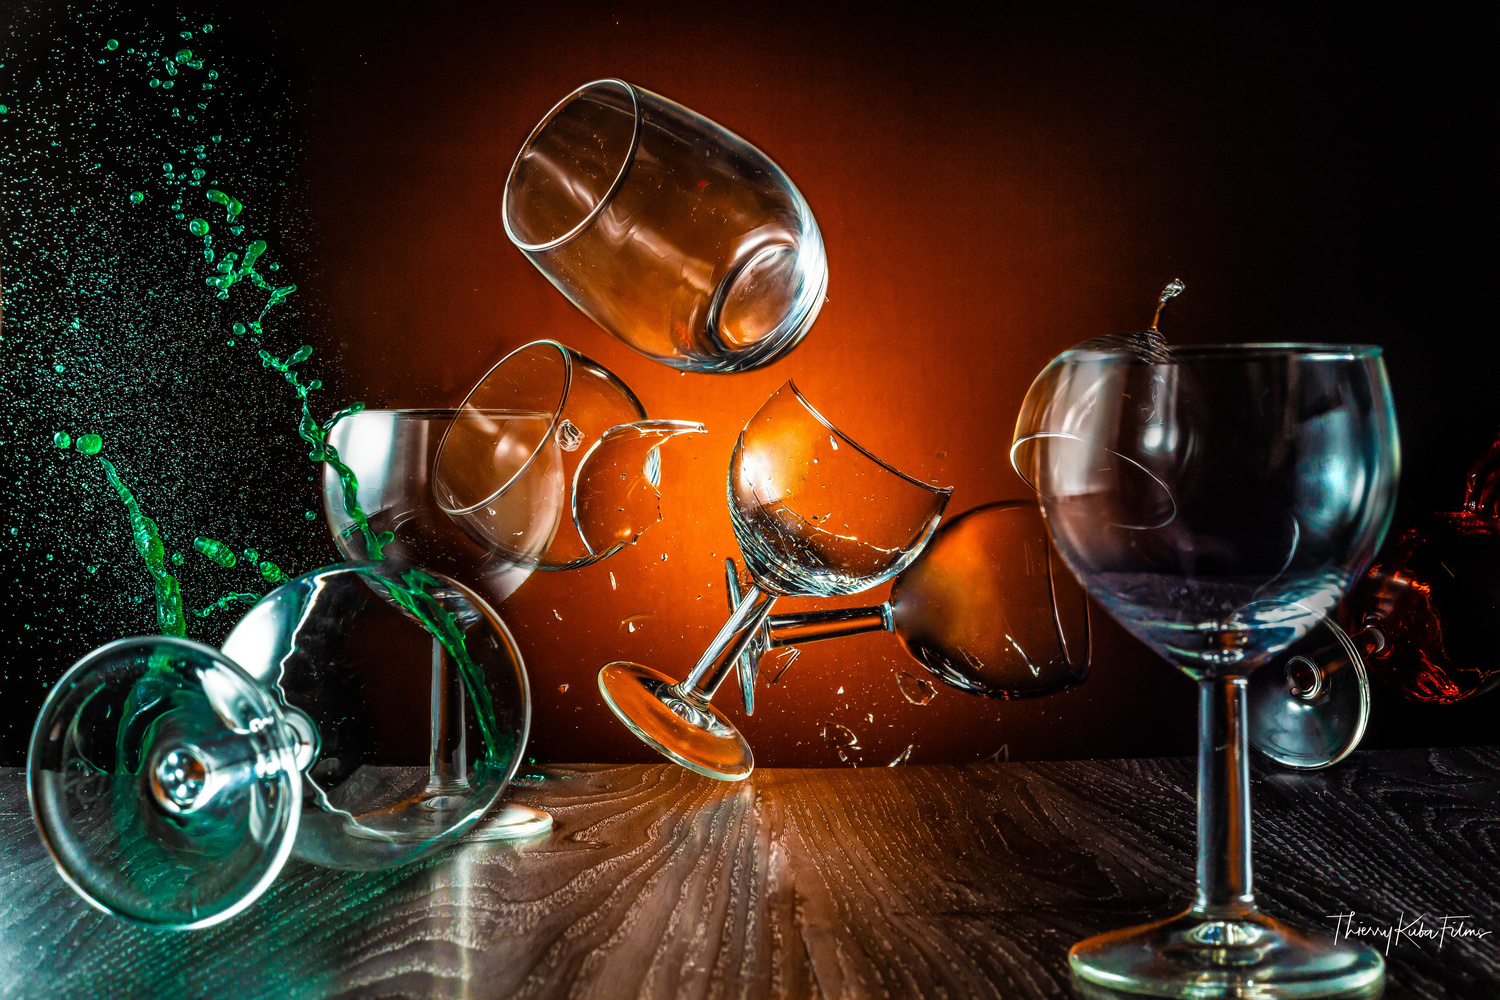 Splash glasses by Thierry KUBA